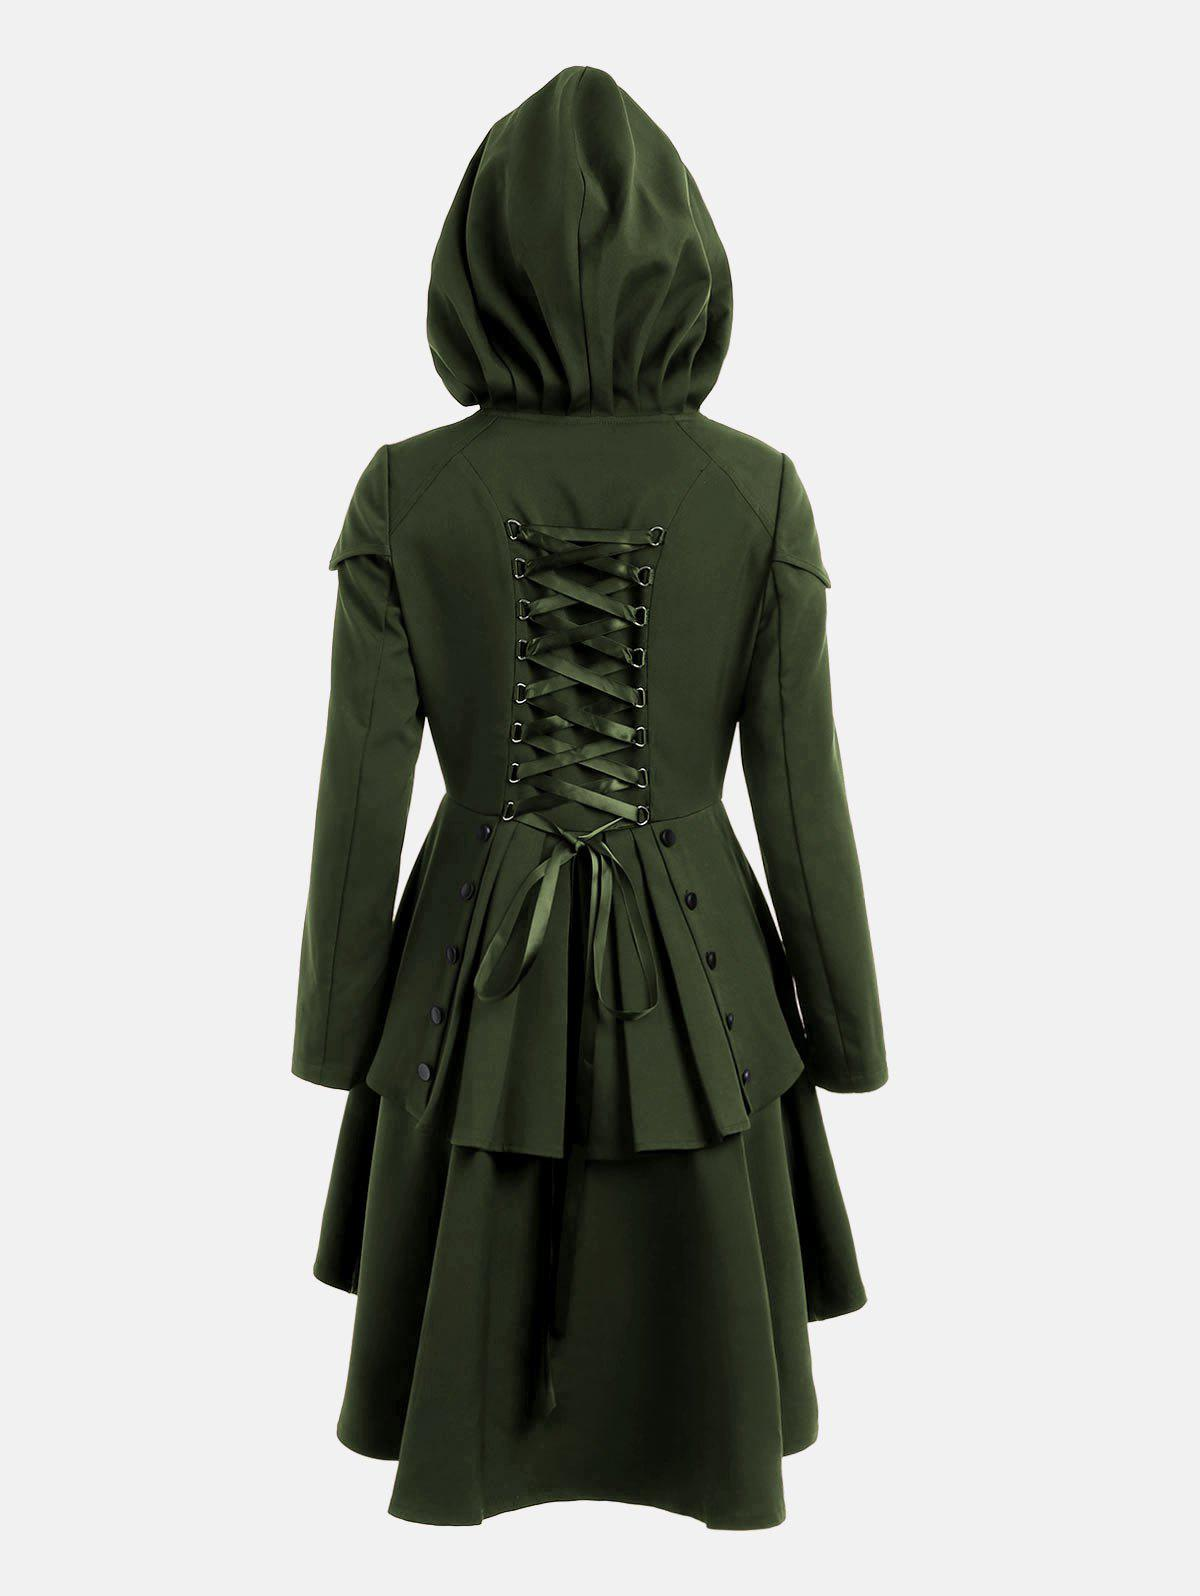 Lace Up Layered High Low Hooded CoatWOMEN<br><br>Size: M; Color: ARMY GREEN; Clothes Type: Others; Material: Polyester; Type: High Waist; Shirt Length: Long; Sleeve Length: Full; Collar: Hooded; Closure Type: Single Breasted; Pattern Type: Solid; Embellishment: Criss-Cross; Style: Gothic; Season: Fall,Spring; With Belt: No; Weight: 0.6600kg; Package Contents: 1 x Coat;